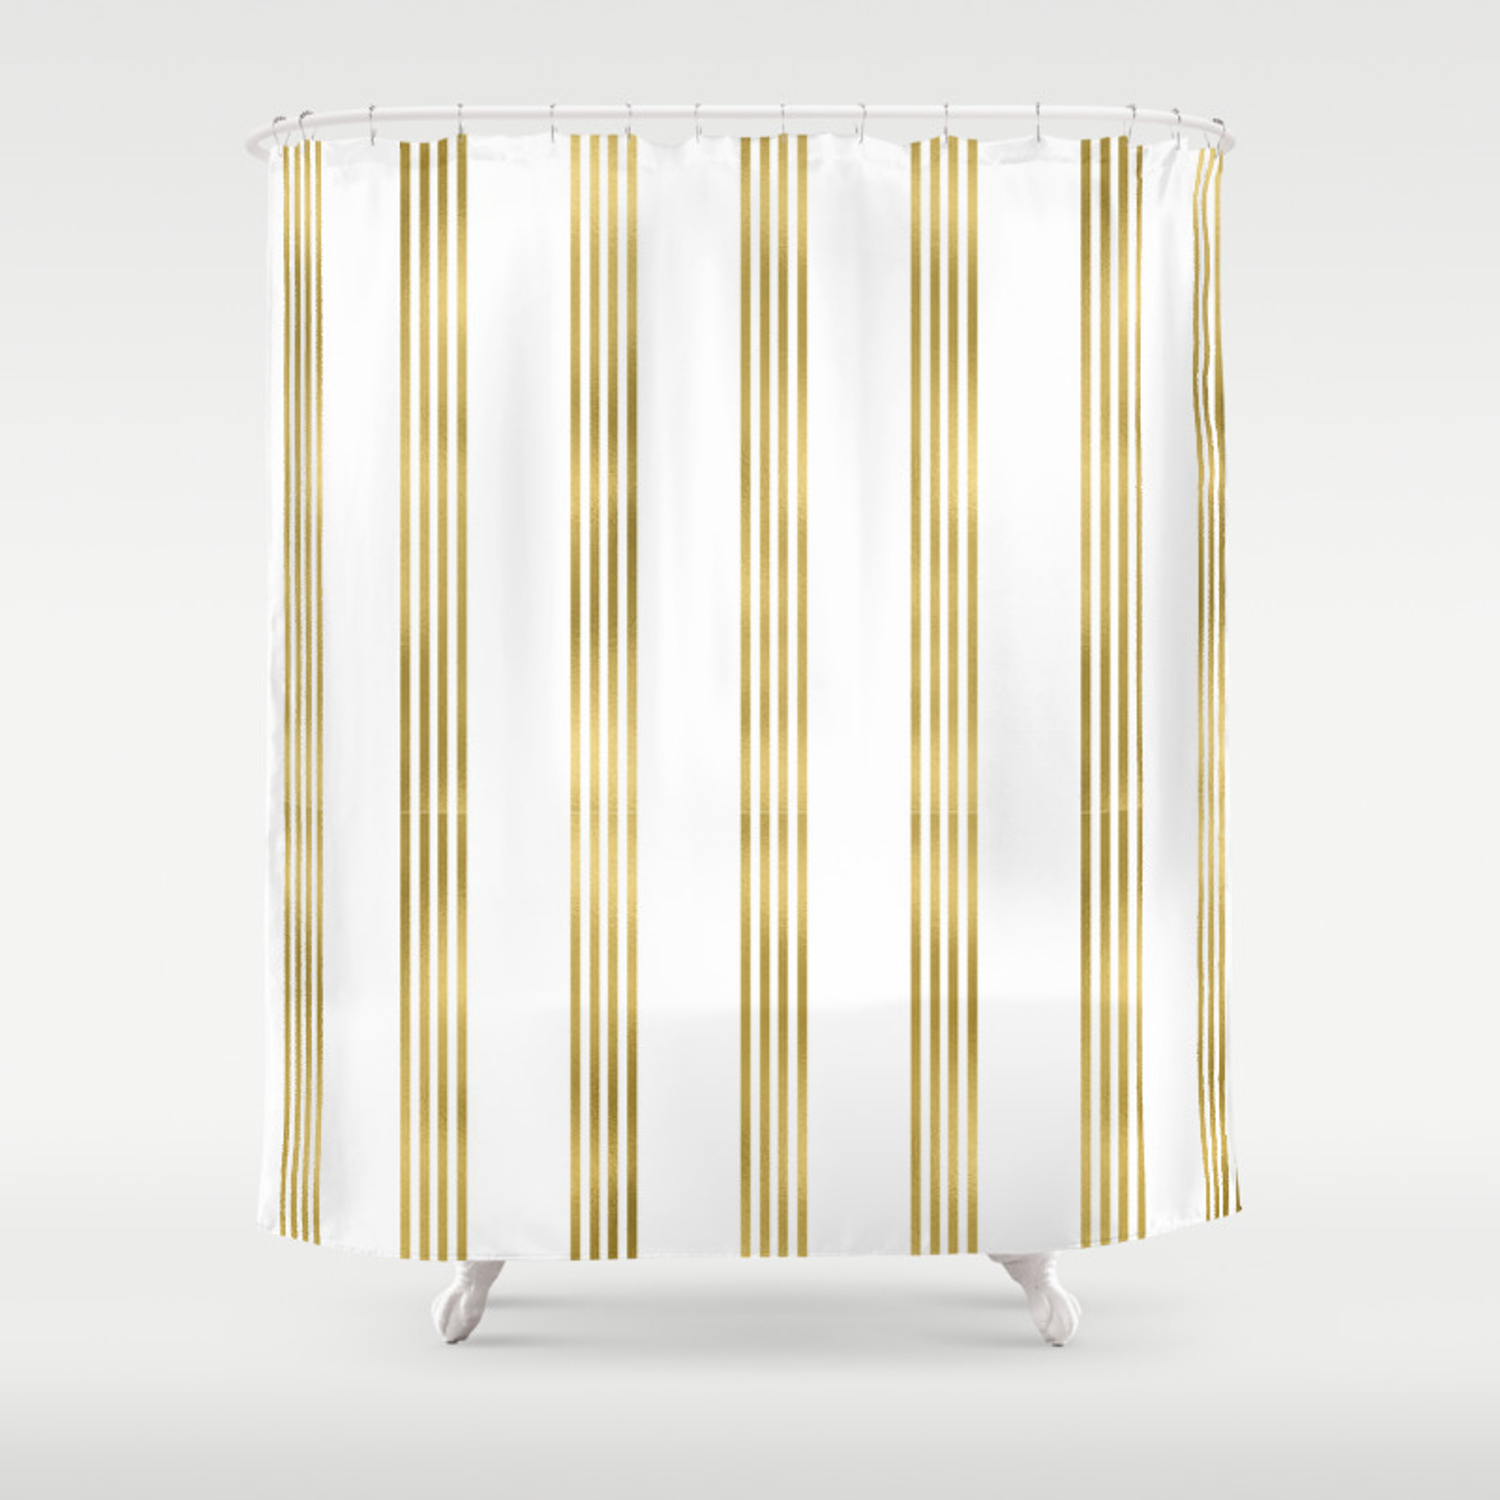 Simply Luxury Gold Small Stripes On Clear White Vertical Pattern Shower Curtain